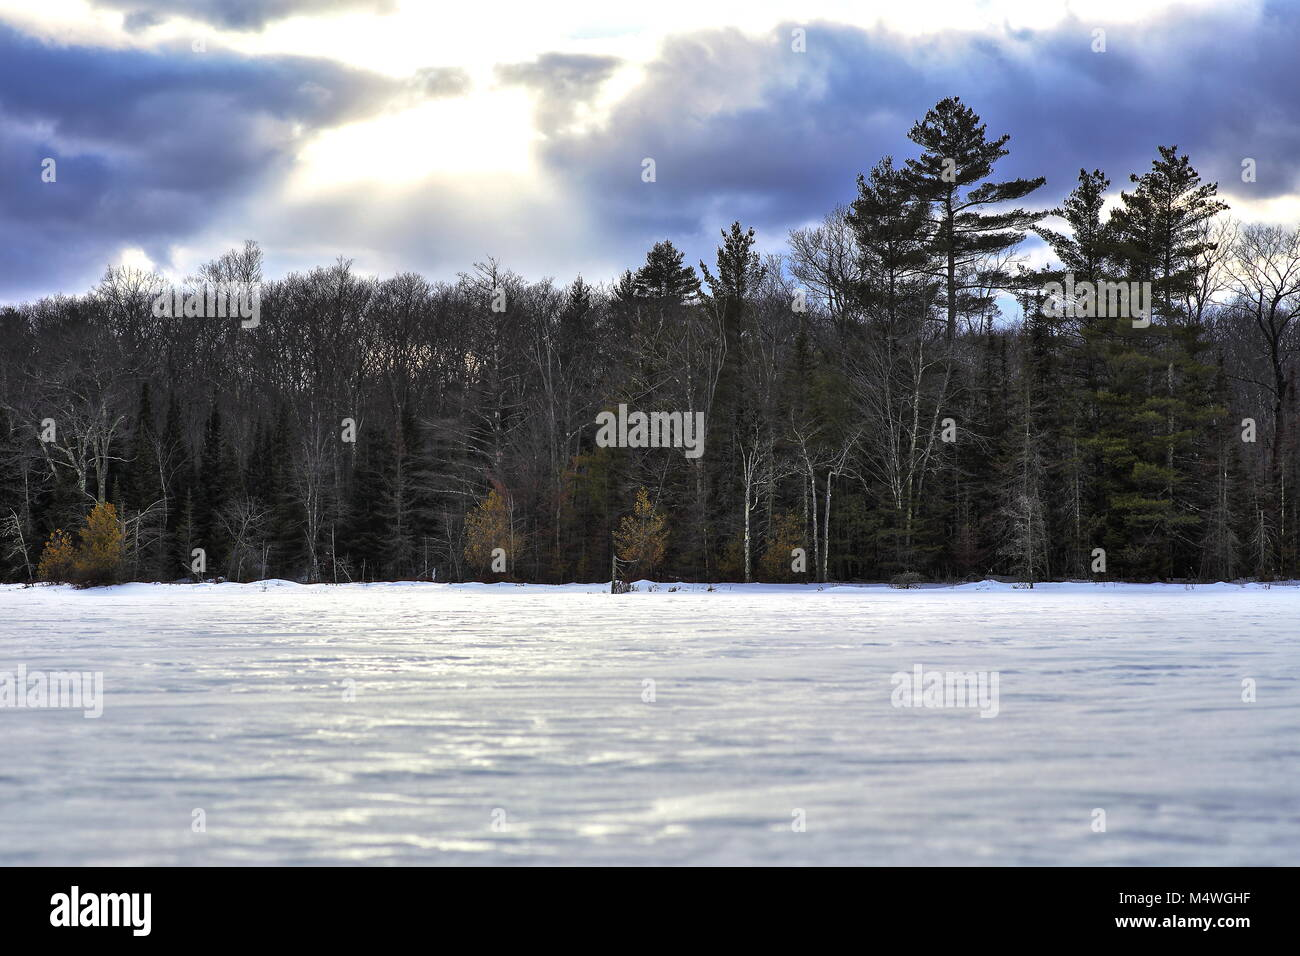 Wingra Park Madison If This Is What >> Wisconsin Winter Trees Landscape Stock Photos & Wisconsin Winter Trees Landscape Stock Images ...